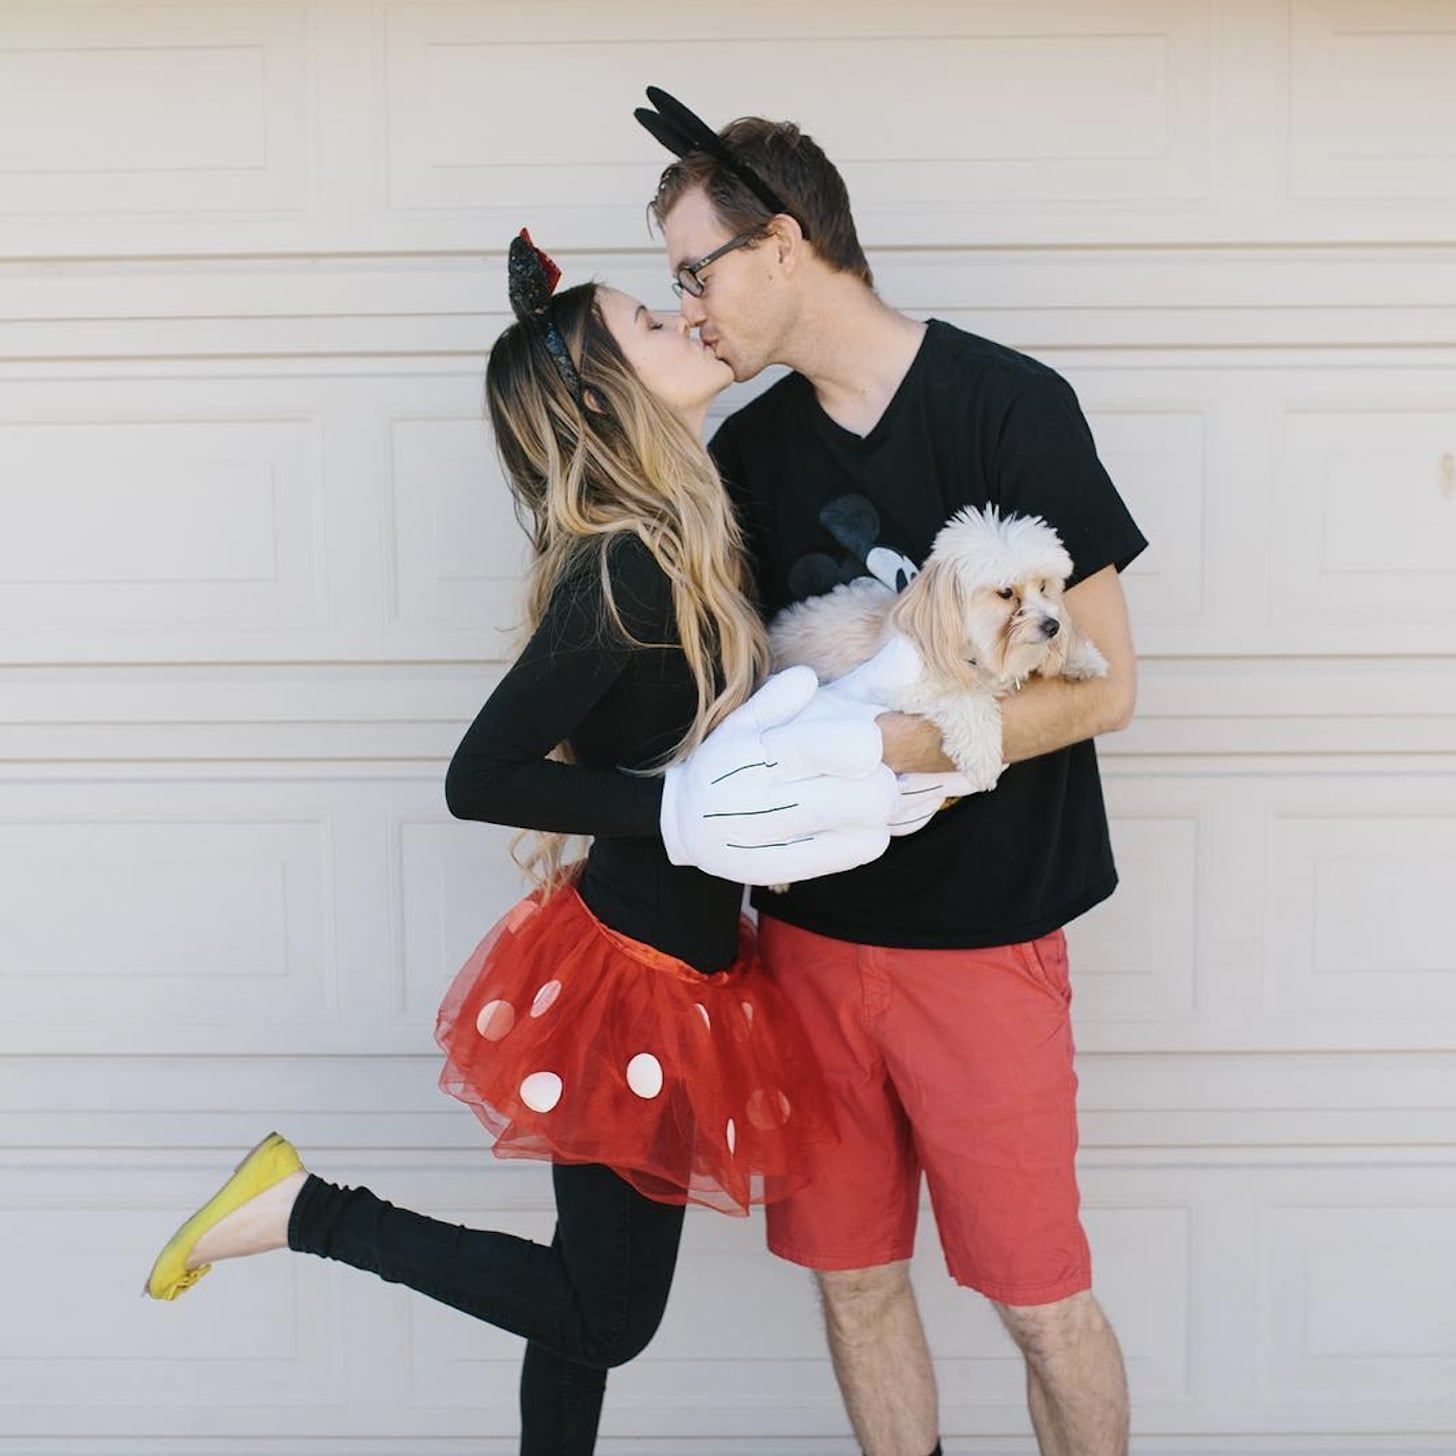 Best Diy Disney Costume Ideas For Couples Popsugar Love Sex